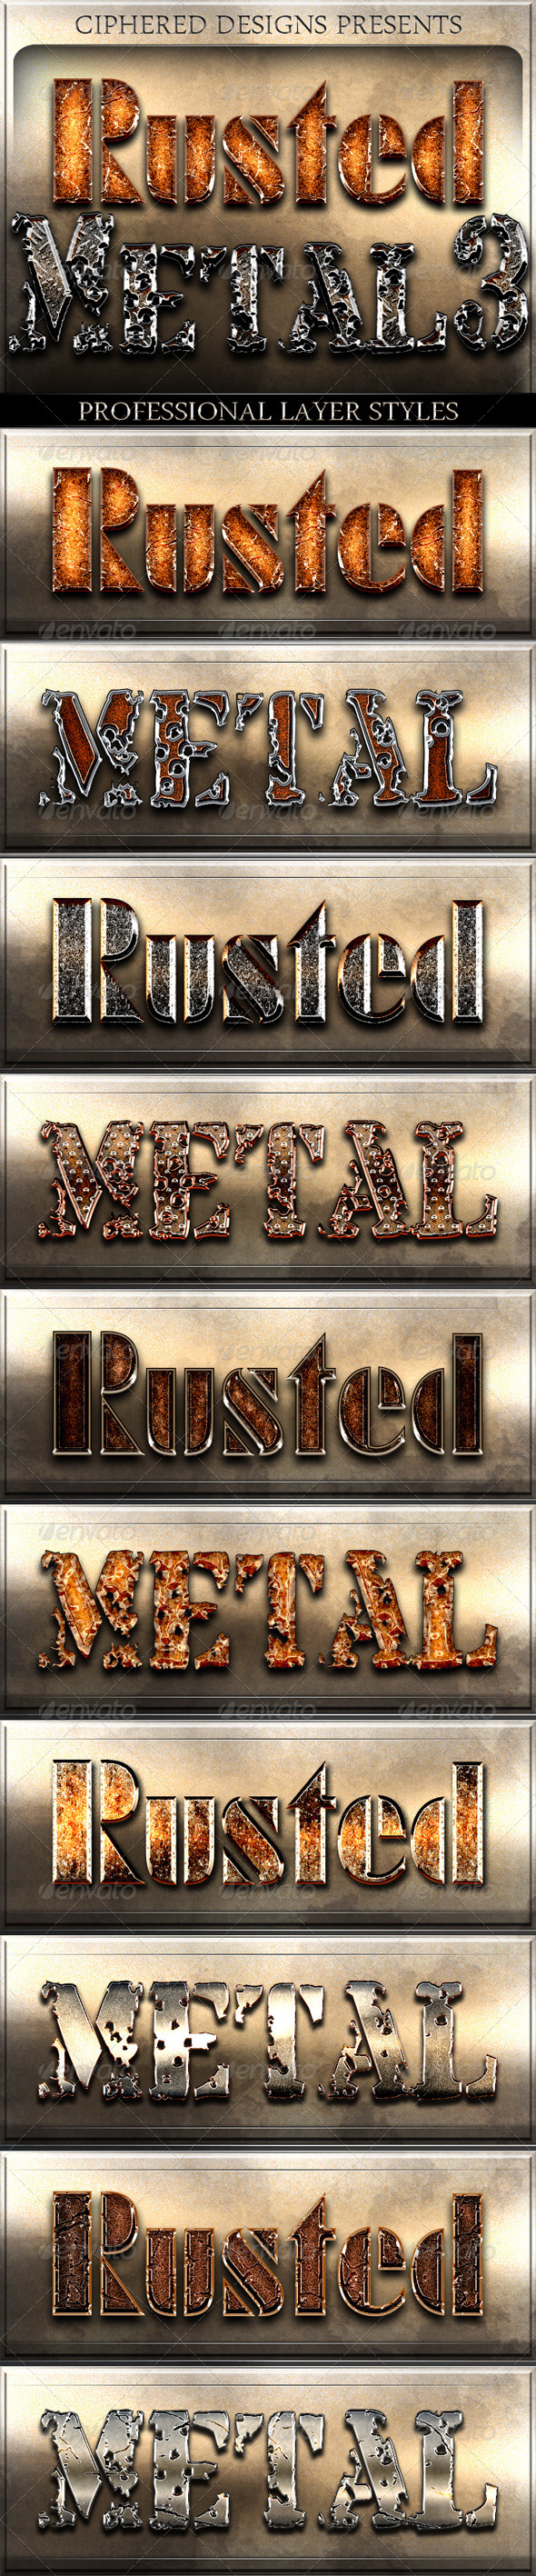 Rusted Metal 3 - Professional Layer Styles - Text Effects Styles